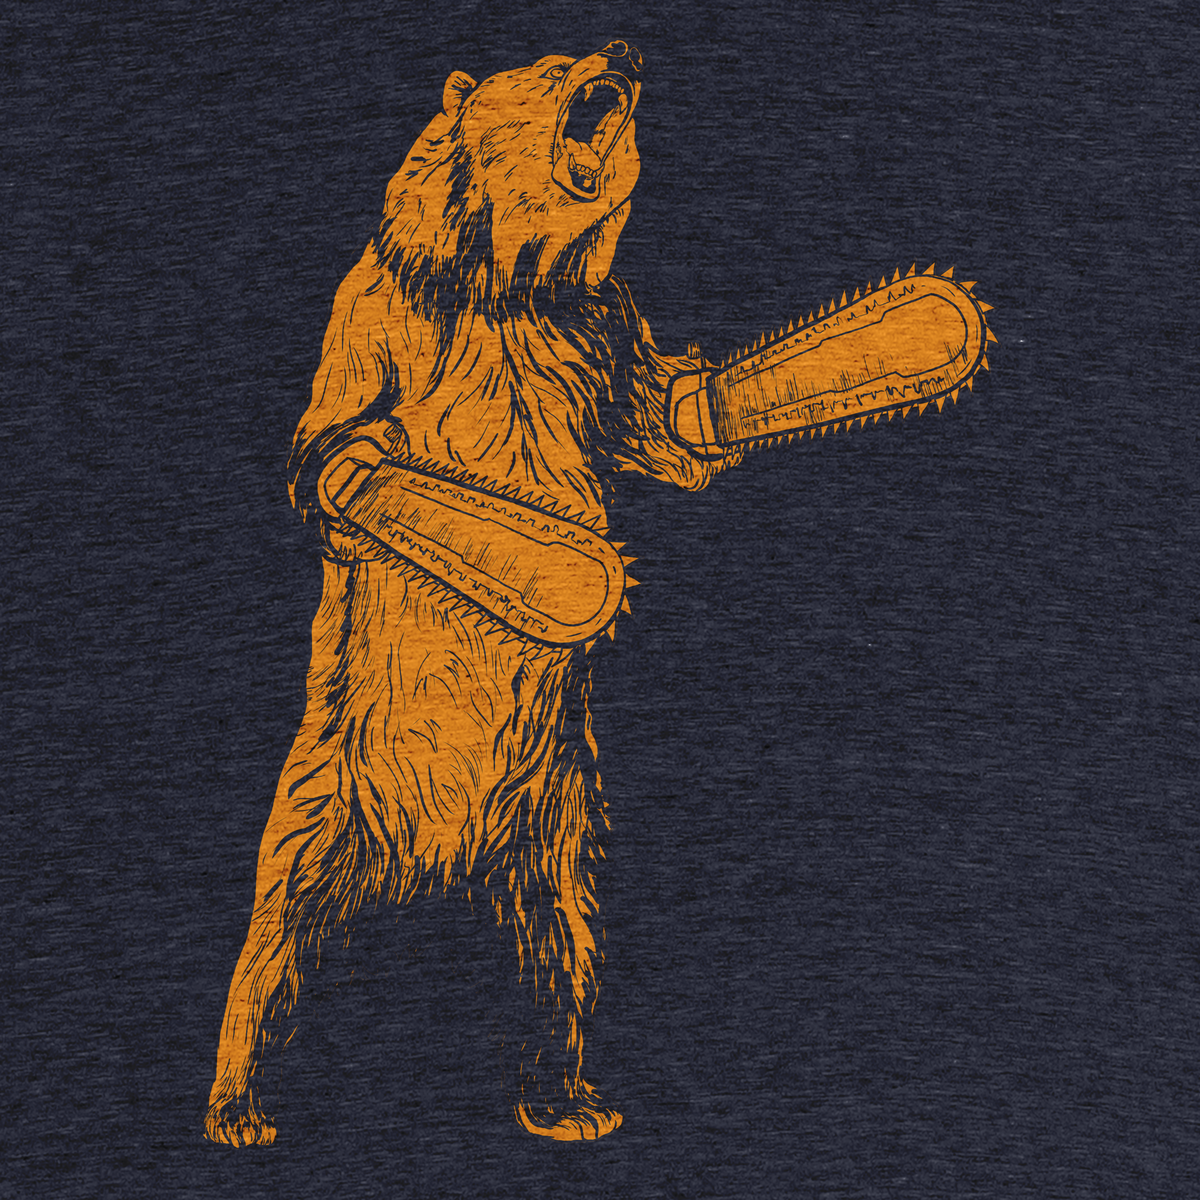 """361988c60d """"The Right To Bear Chainsaw Arms"""" graphic tee by Ryan Redbeard. 